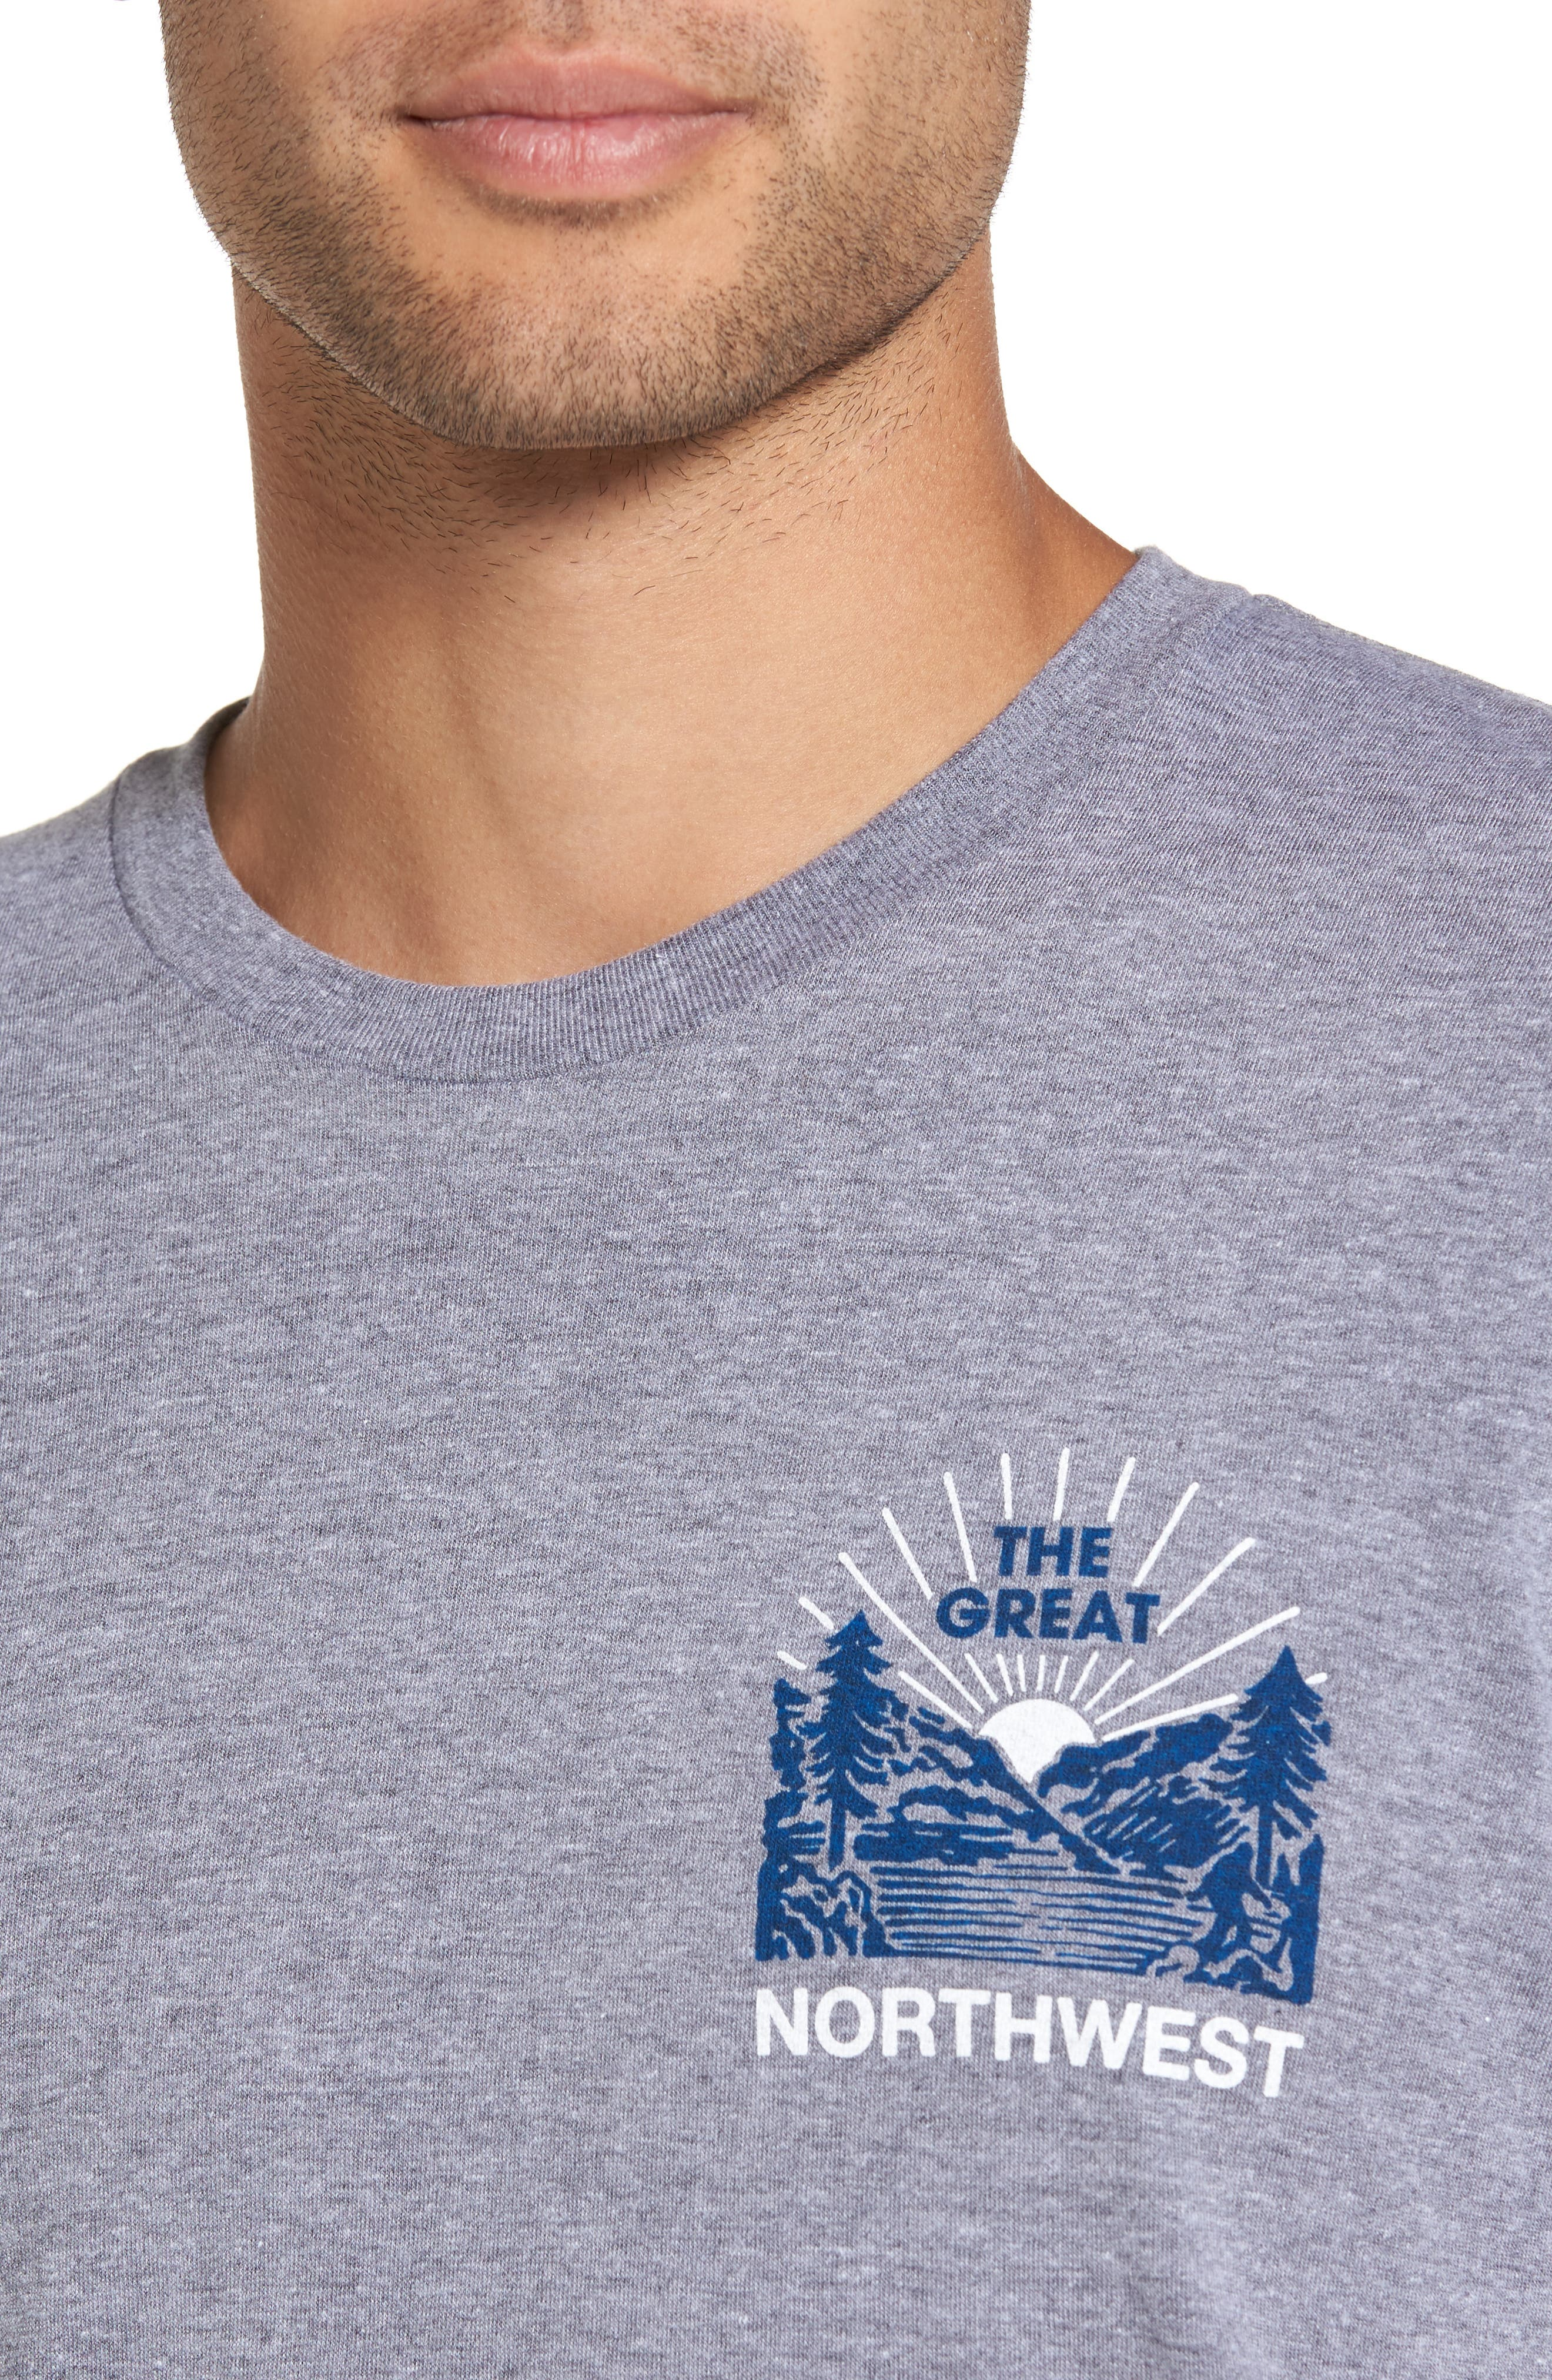 Squatch Valley 2 Graphic T-Shirt,                             Alternate thumbnail 4, color,                             070